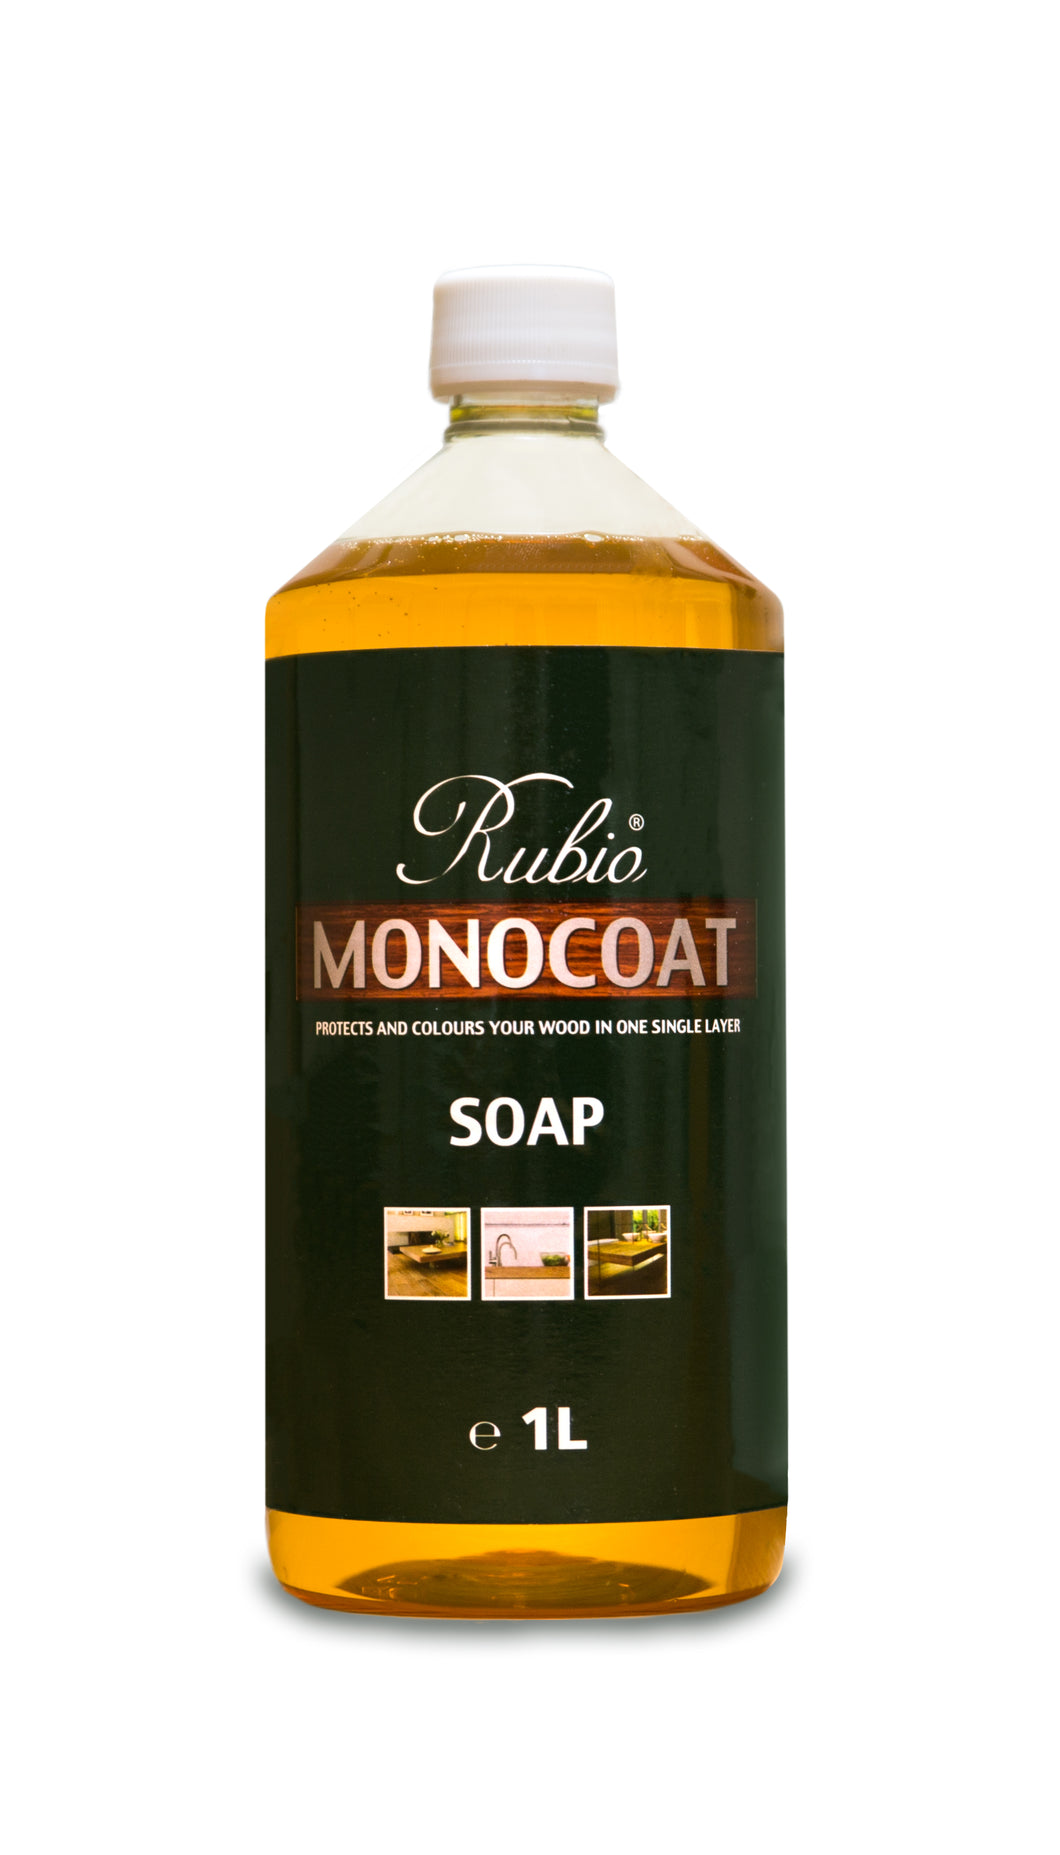 Rubio Monocoat Wood Stain Natural Soap